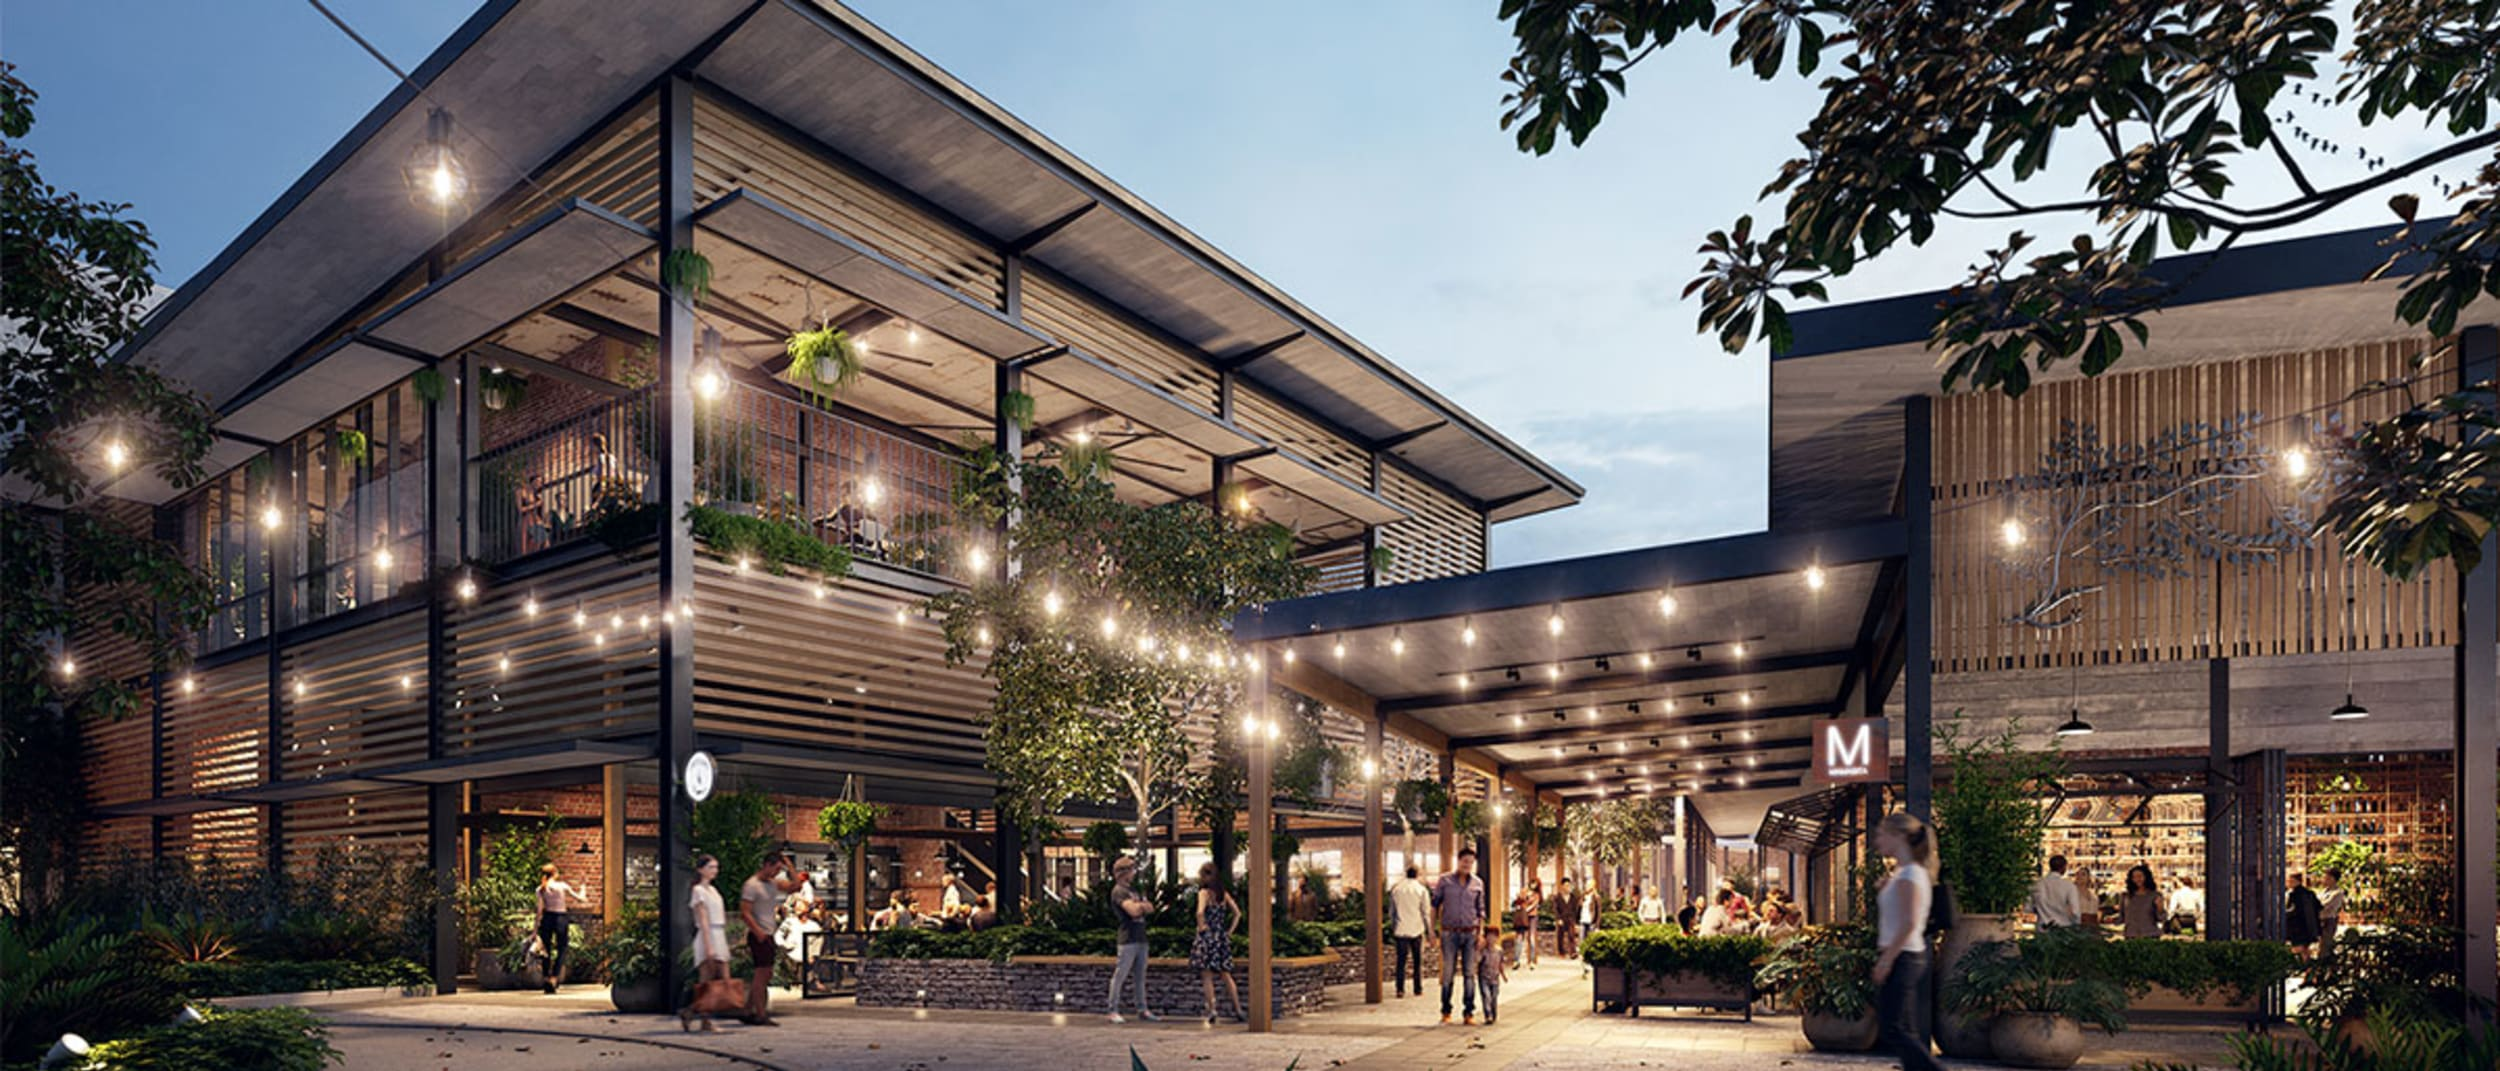 Your new dining, lifestyle and entertainment precinct